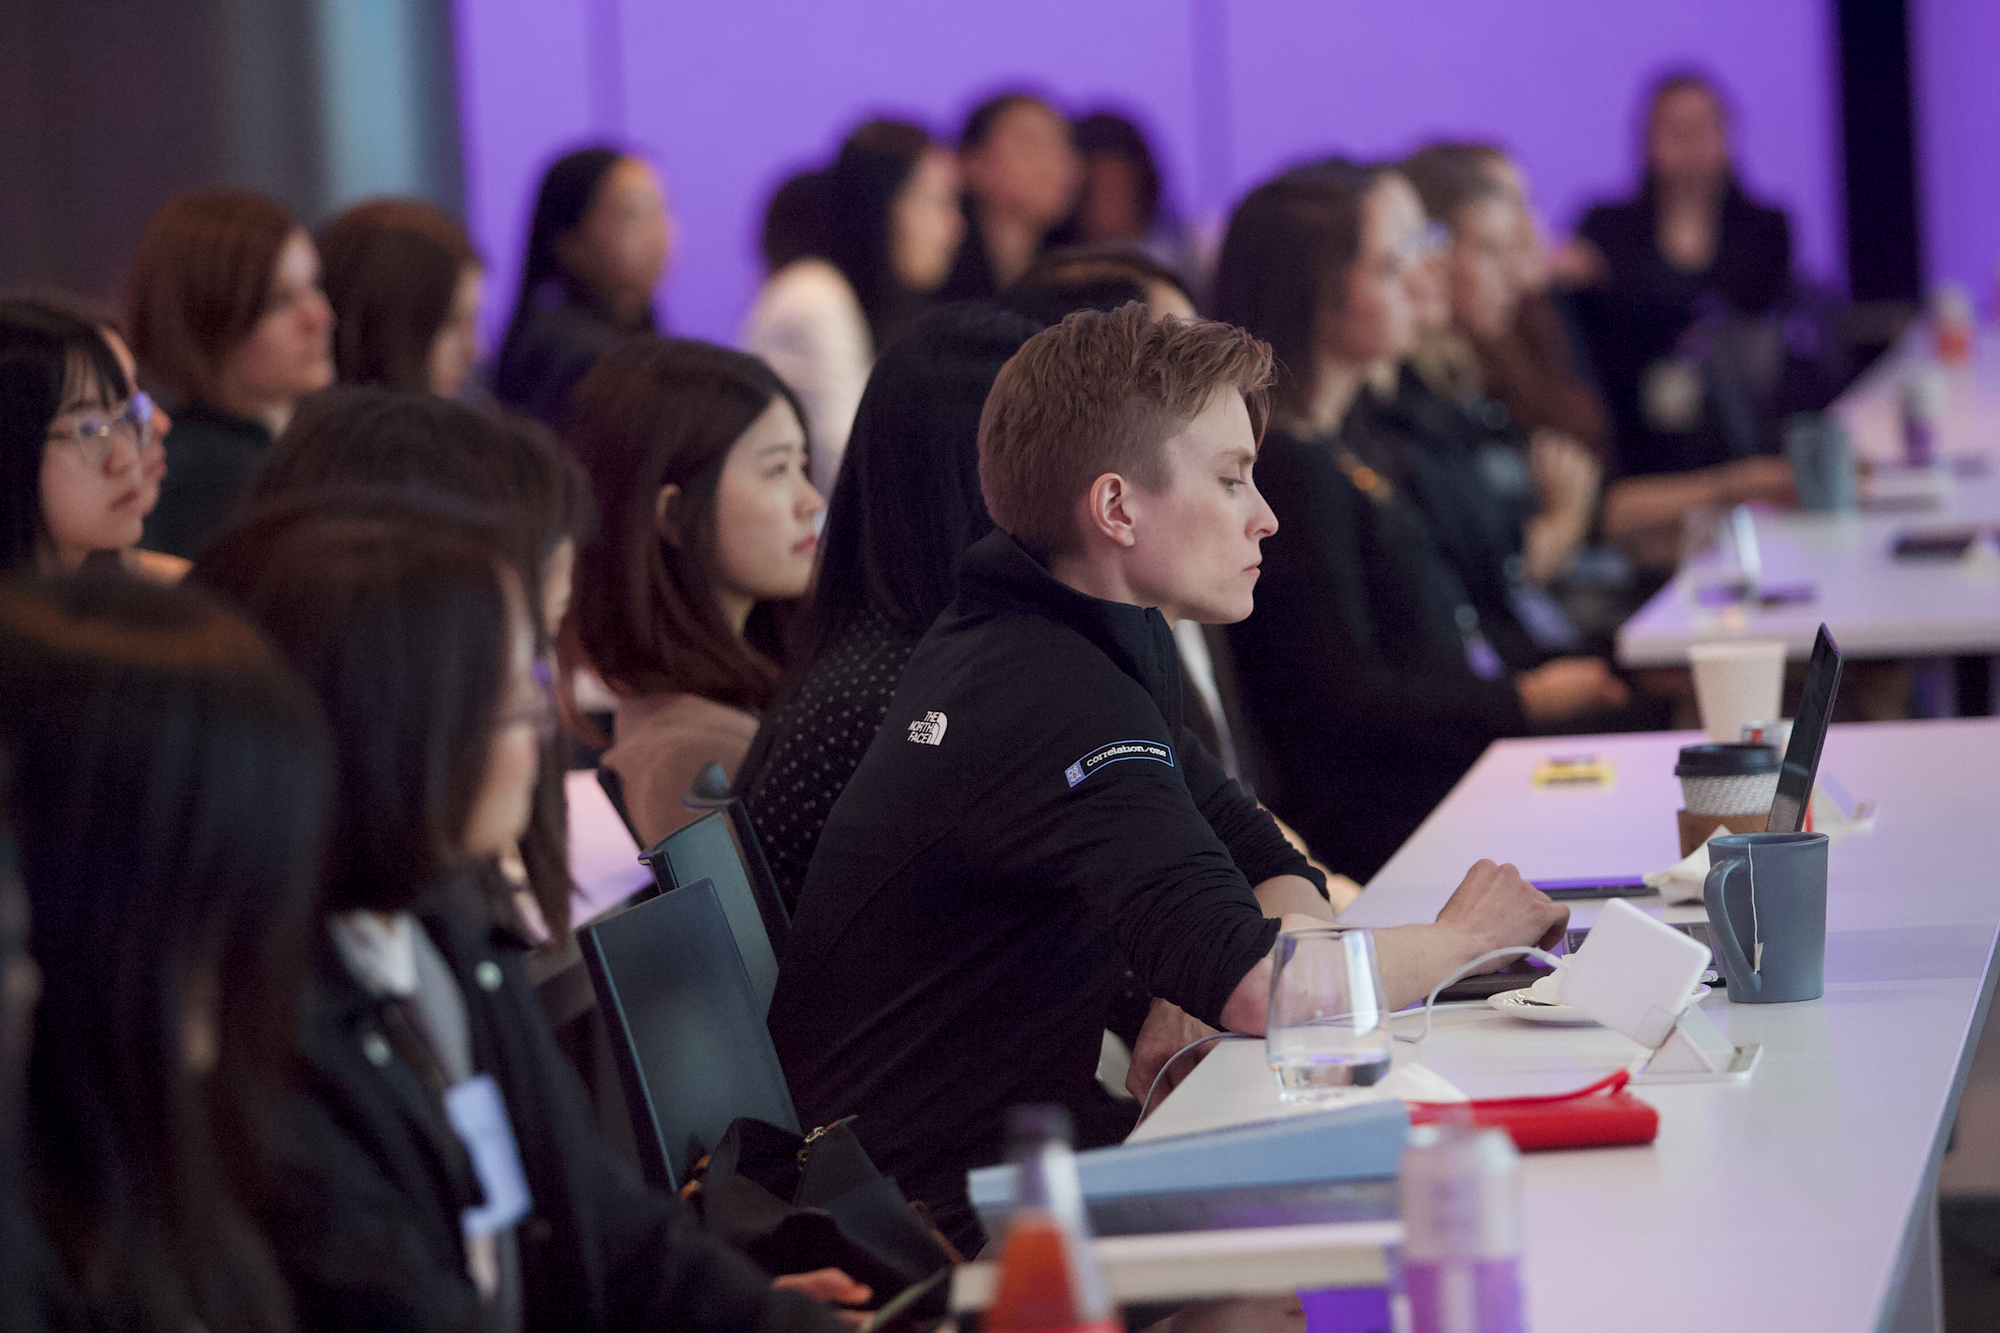 The Troubling Data Points That Inspired Us To Create the Data Science For All: Women's Summit